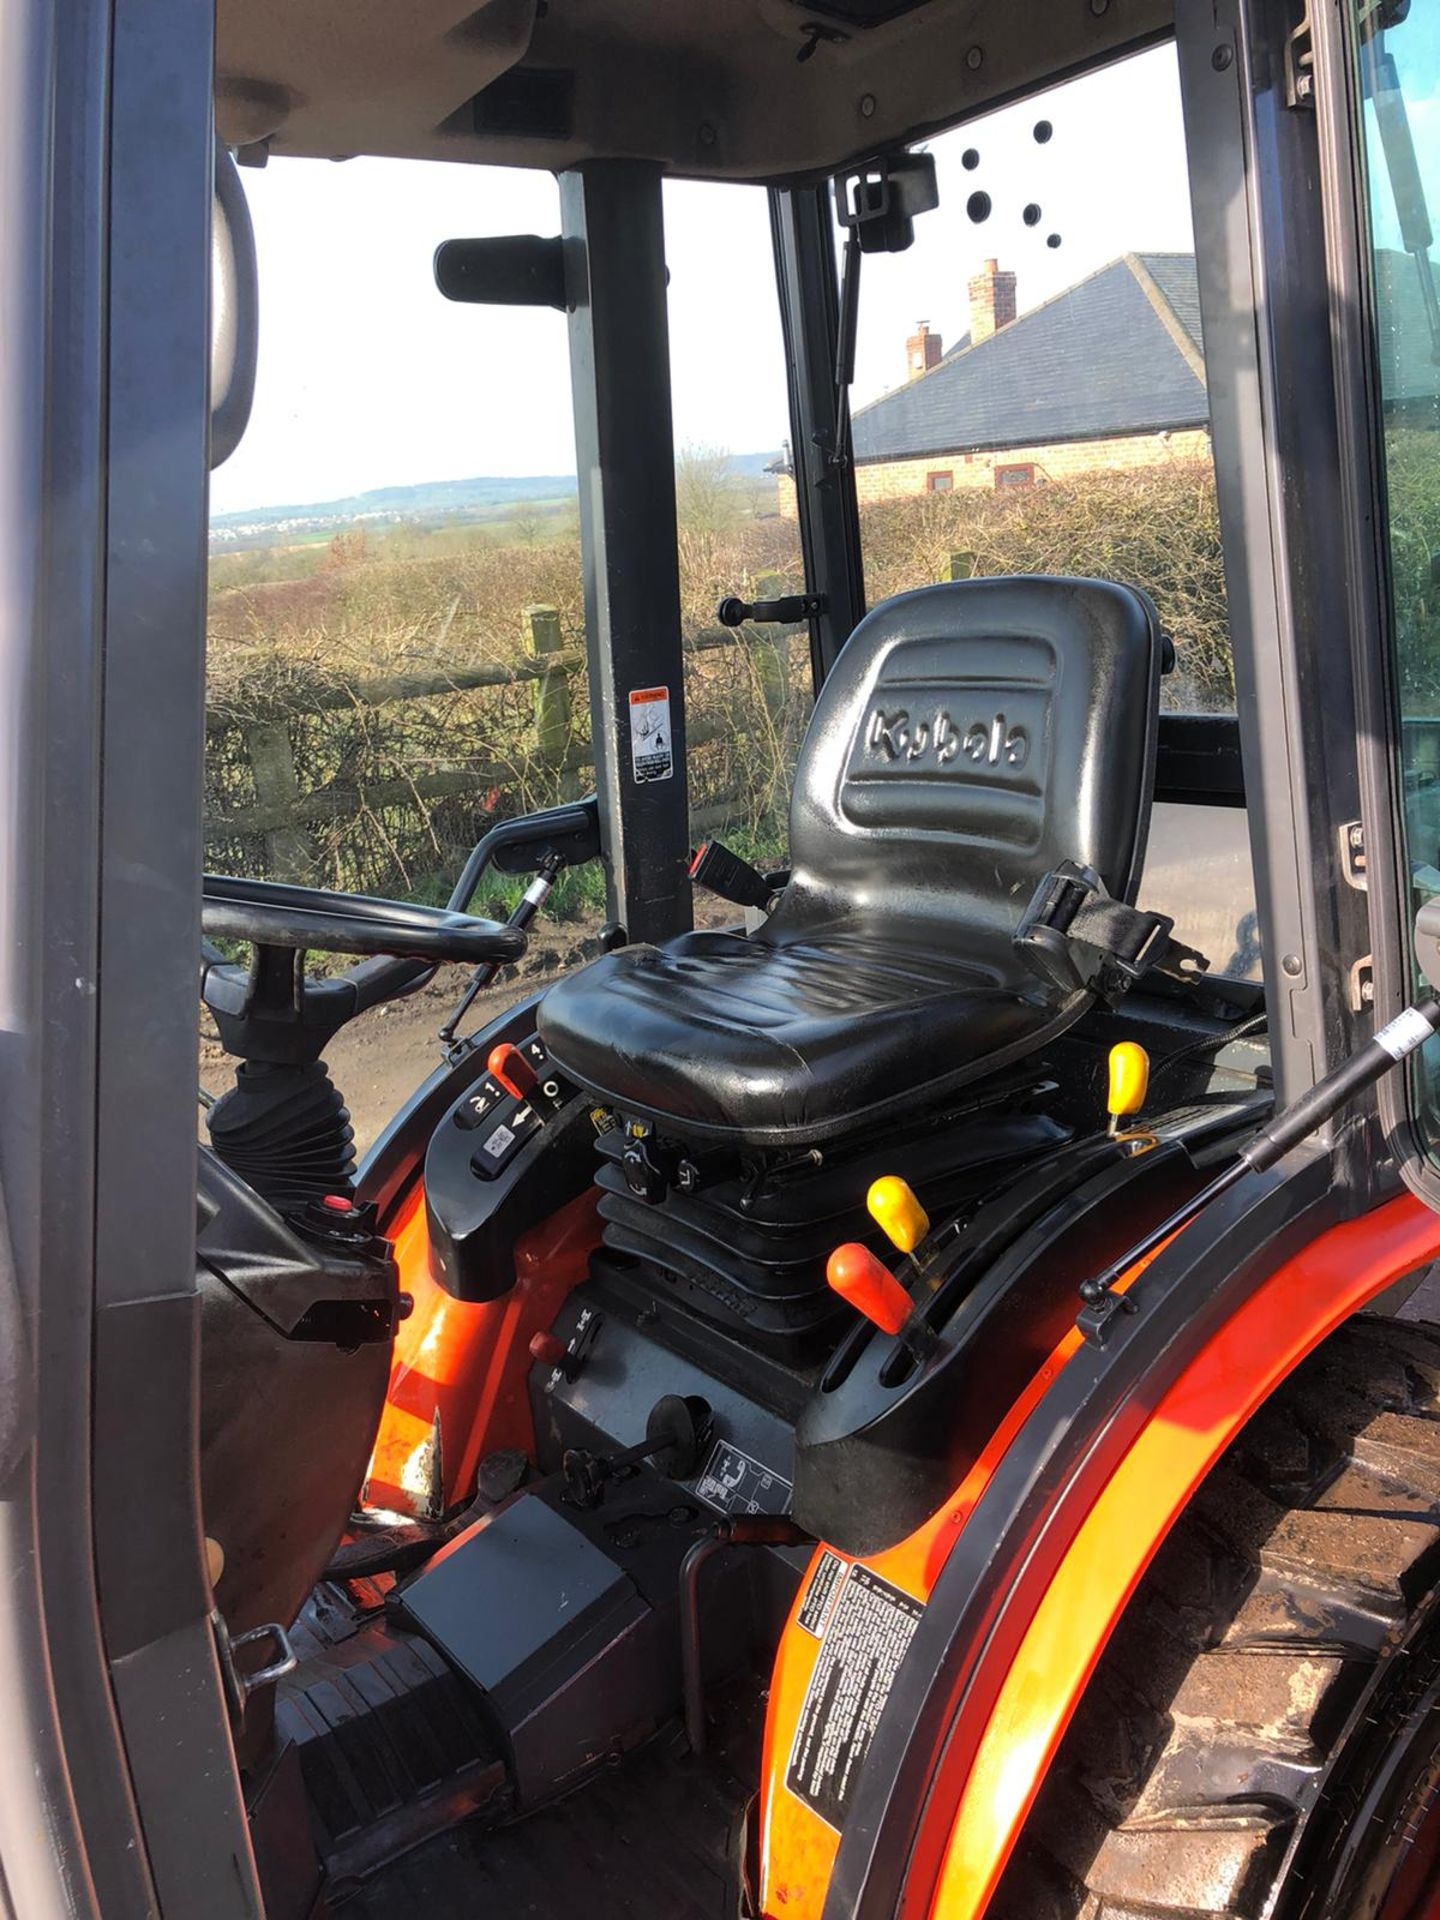 Lot 47 - KUBOTA B2230 COMPACT TRACTOR, MODEL B2230, FULL GLASS CAB, 3 POINT LINKAGE, REAR PTO, 4 WHEEL DRIVE